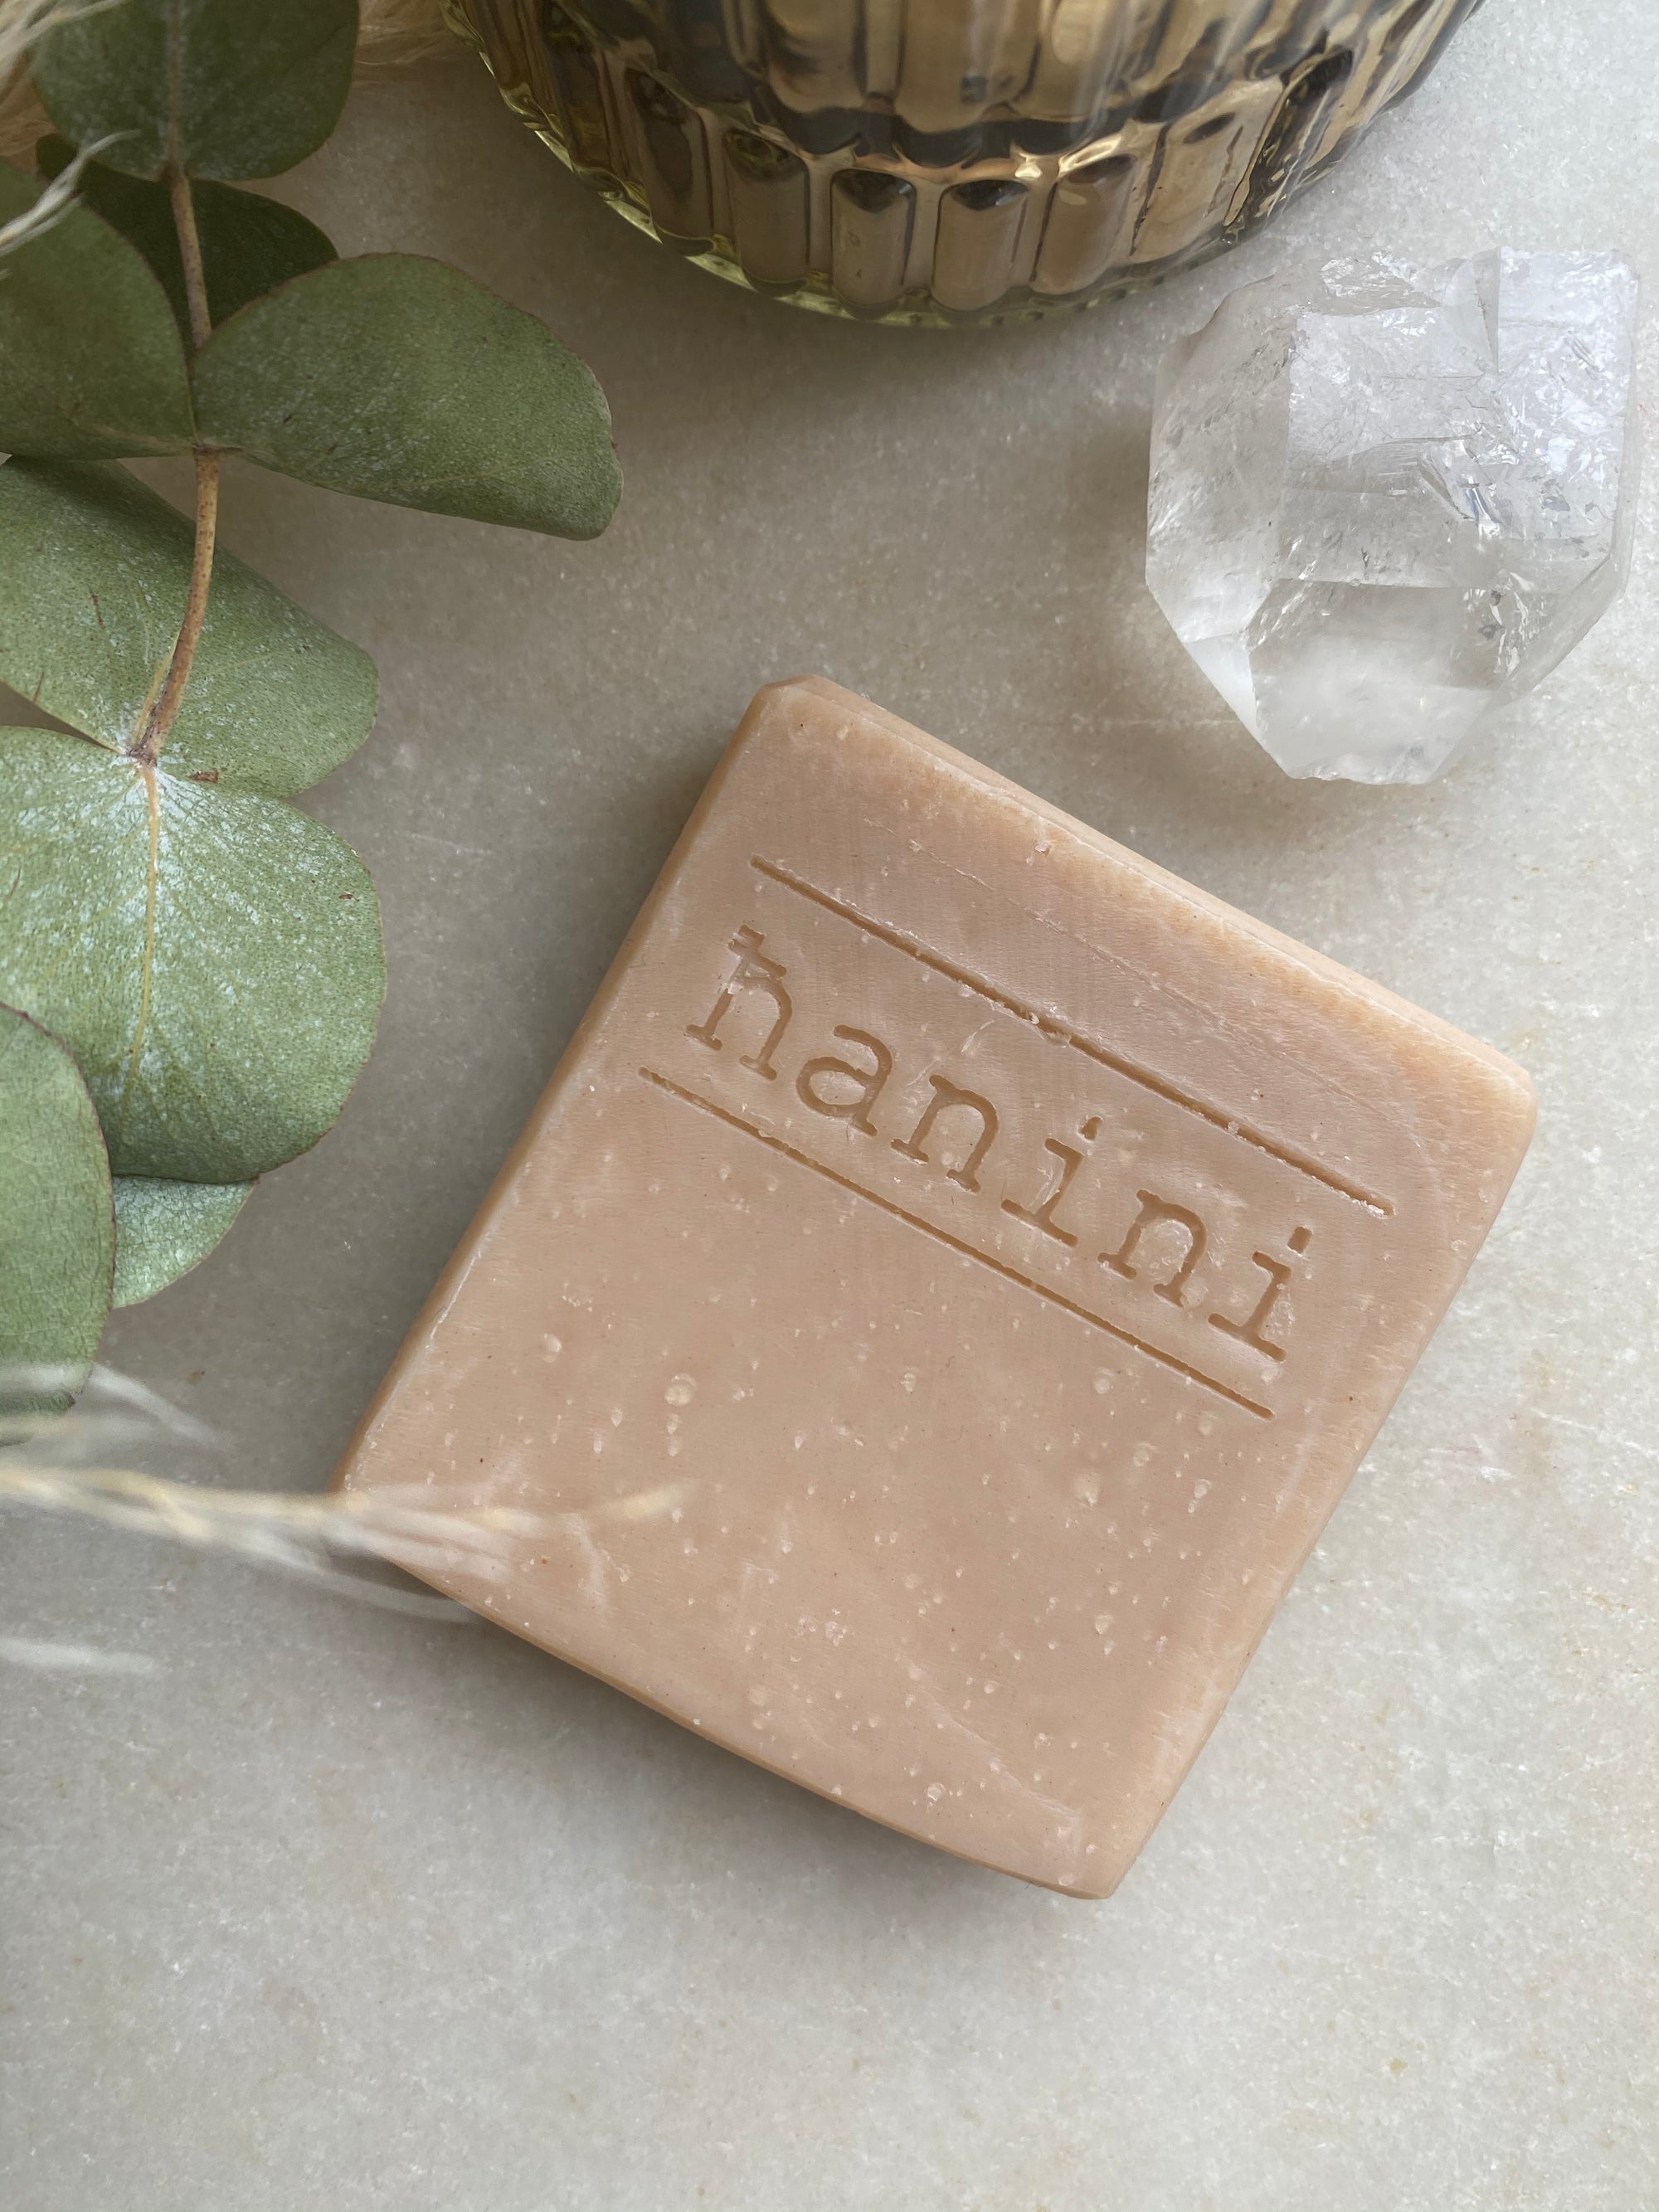 Hanini Soaps - RENEWAL Clay Natural Soap - Pastel Pink Clay